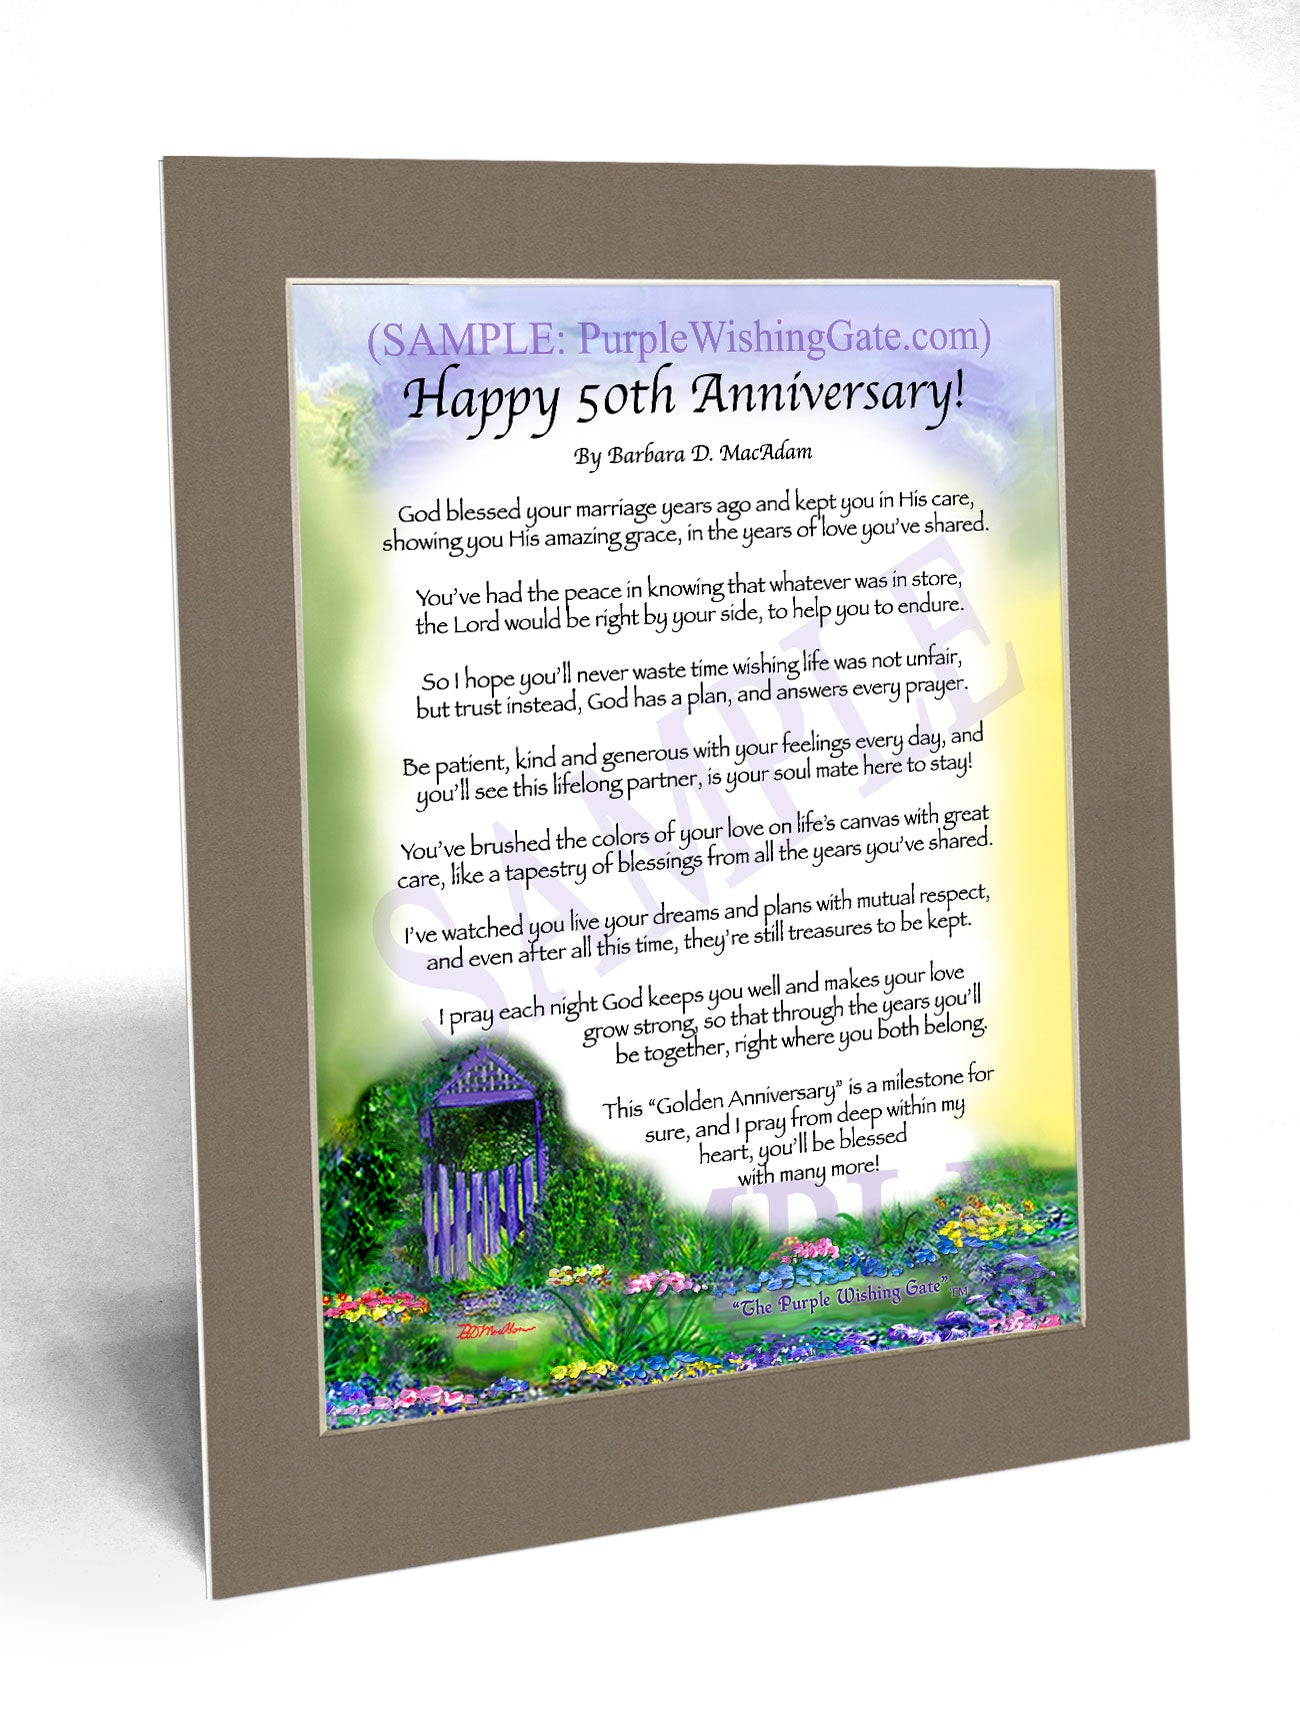 Happy 50th Anniversary! - Anniversary Gift - PurpleWishingGate.com